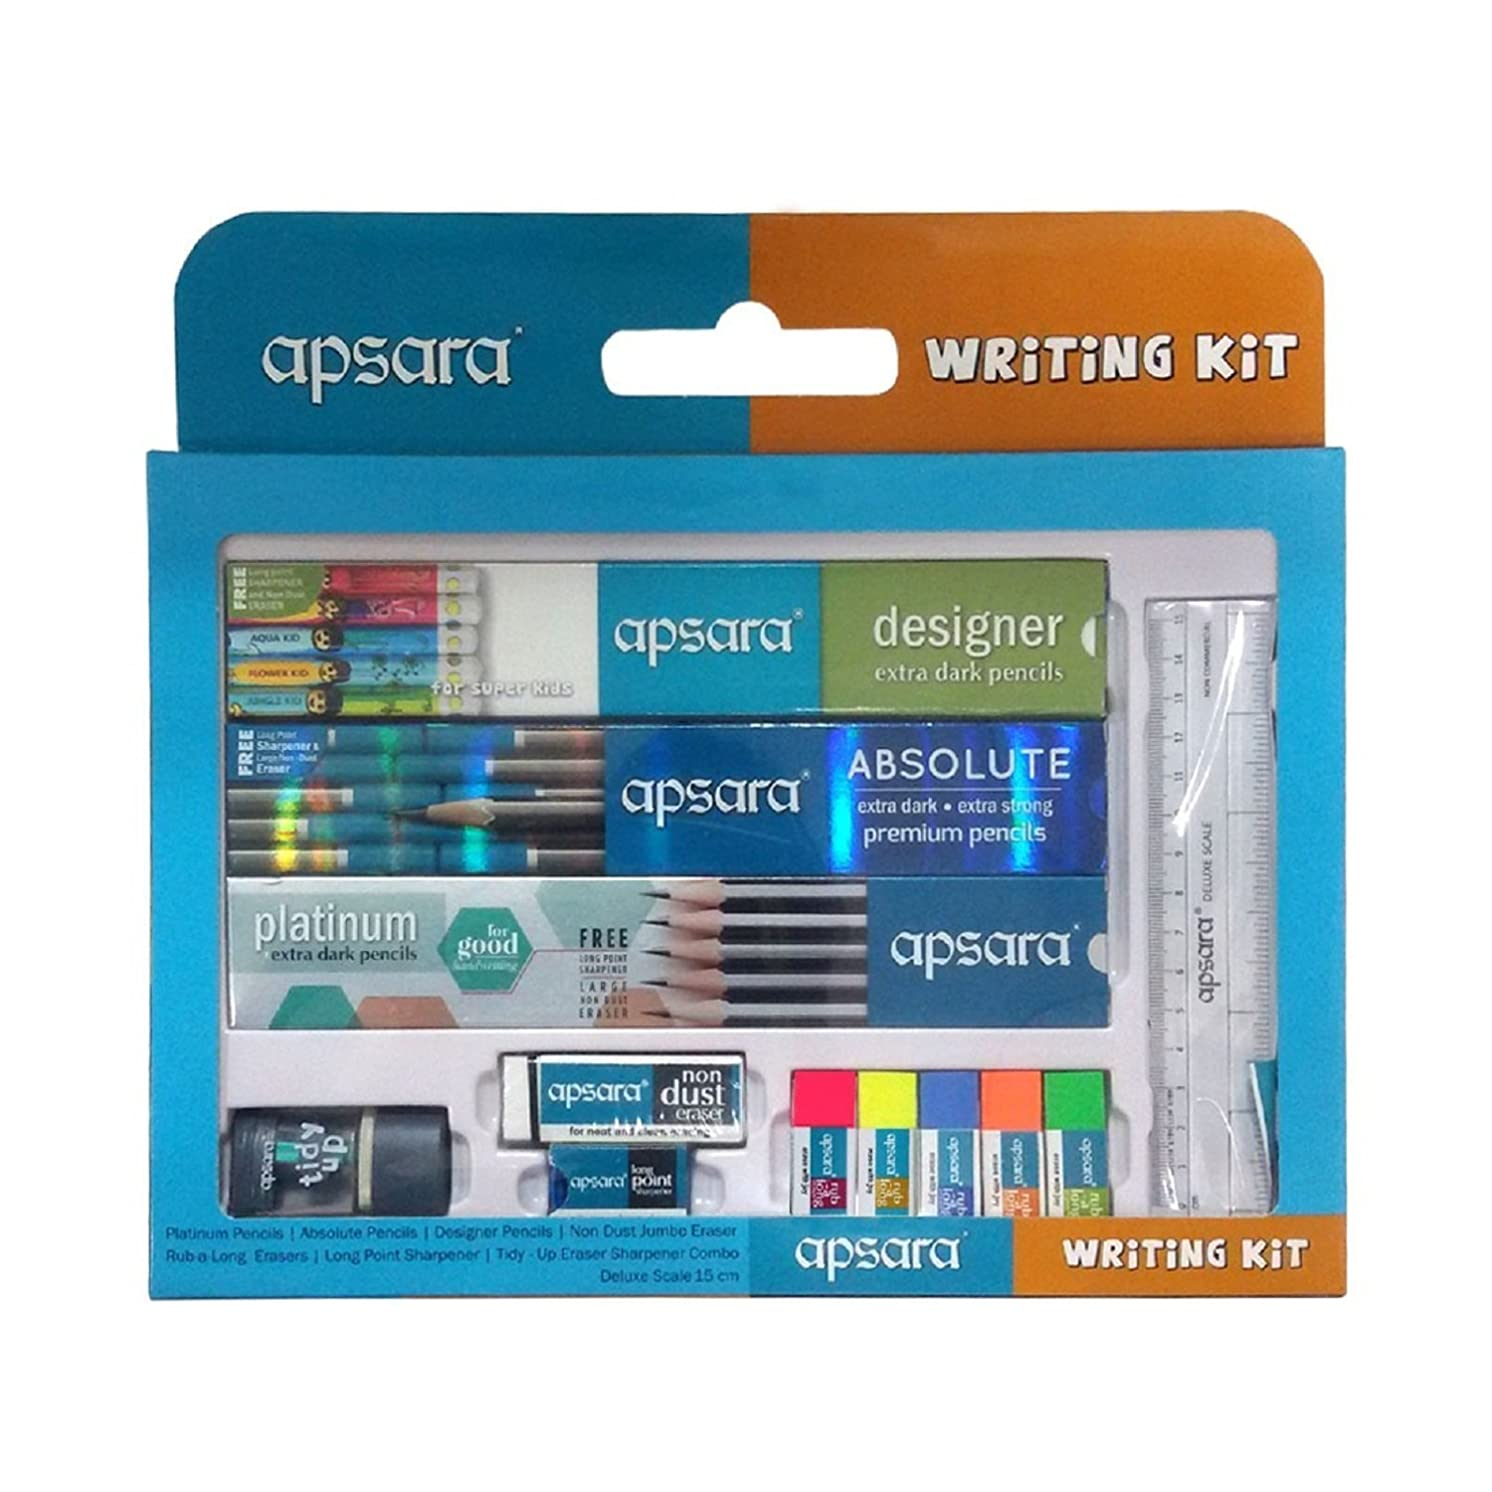 Apsara Writing Kit for art and craft, writing - Buy Original only at E-Retail Deals.